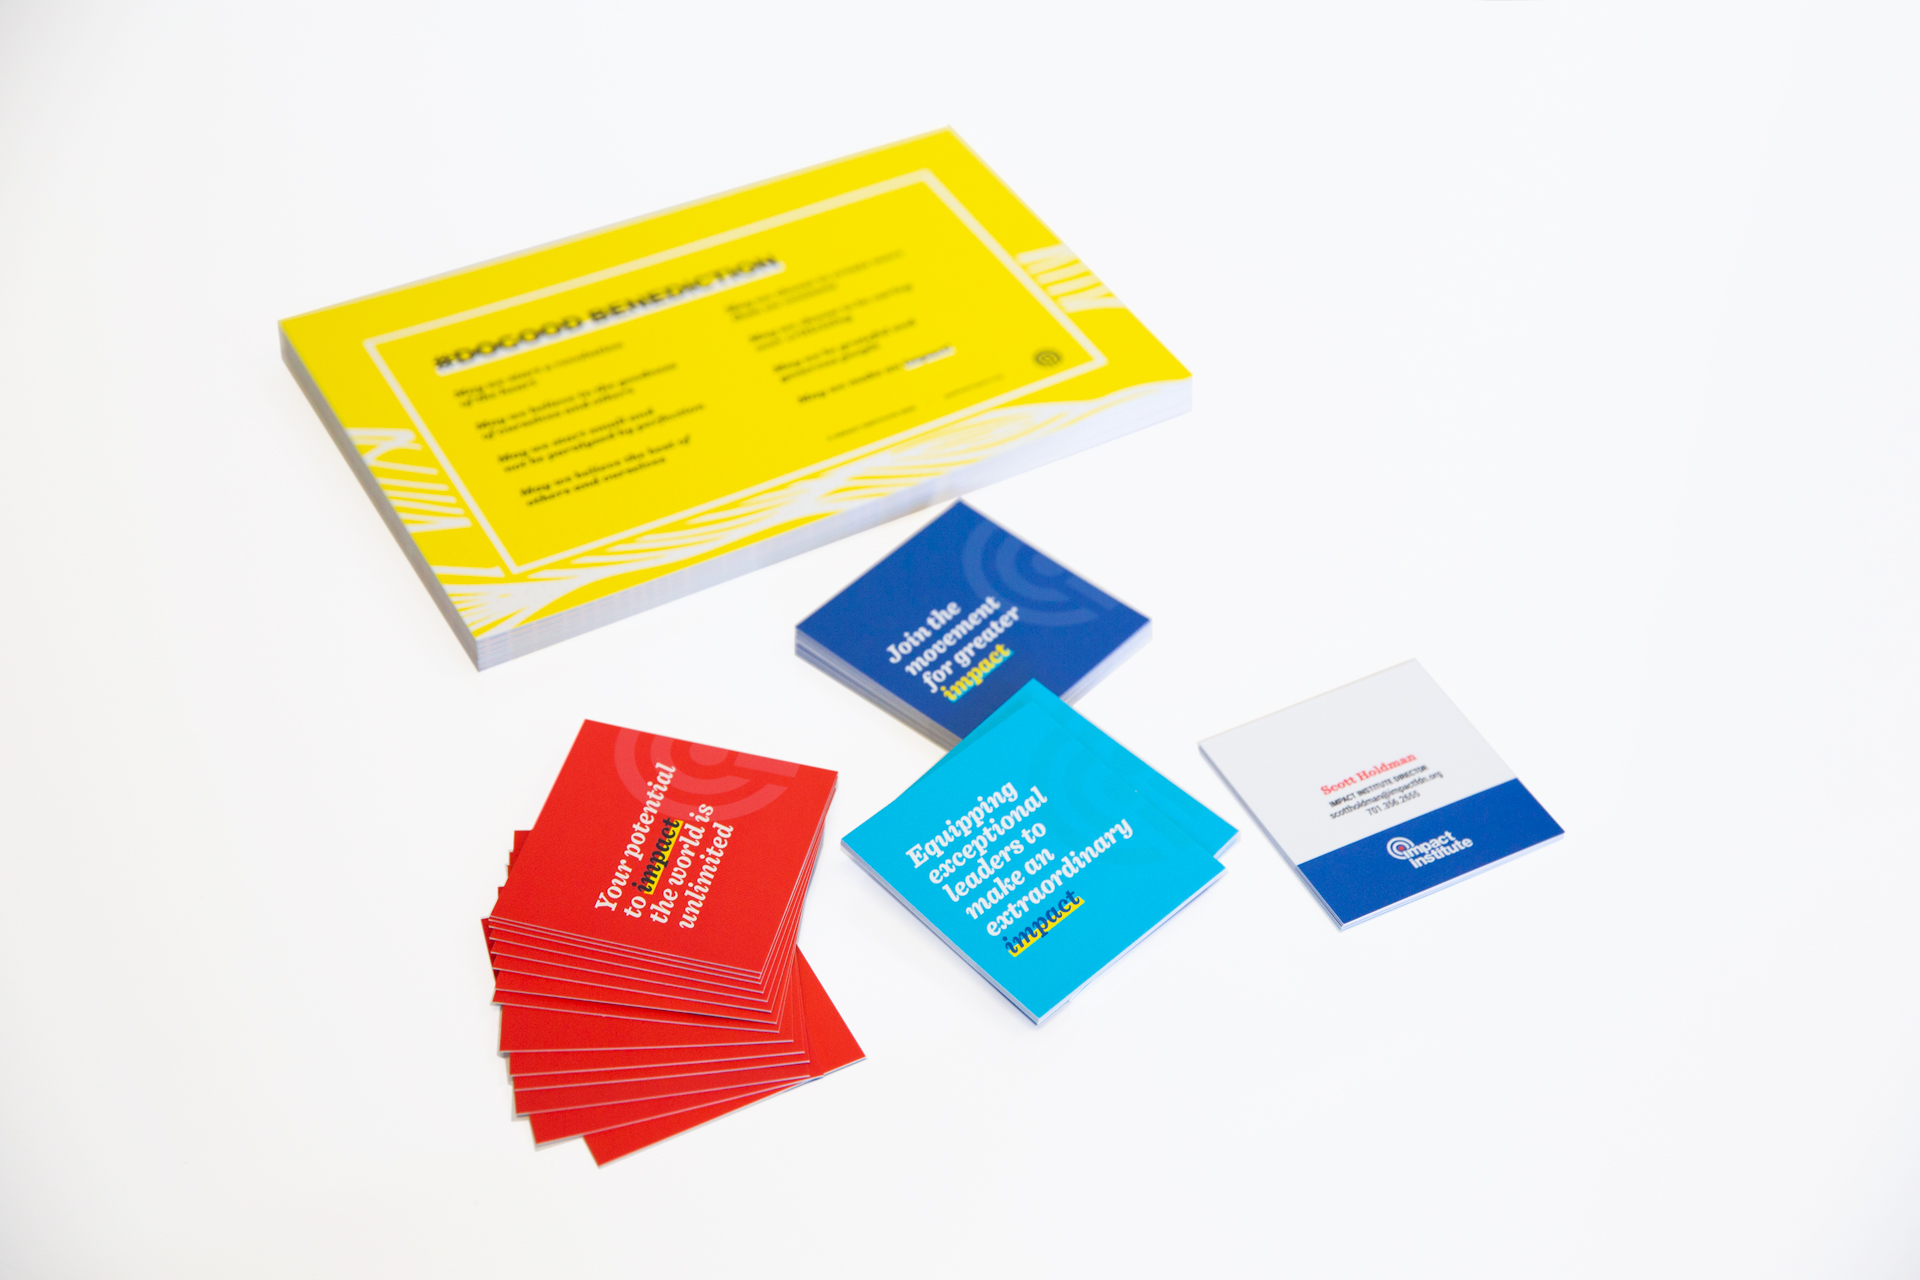 Stack of yellow postcards and scattered red, aqua, and dark blue square business cards on a white surface